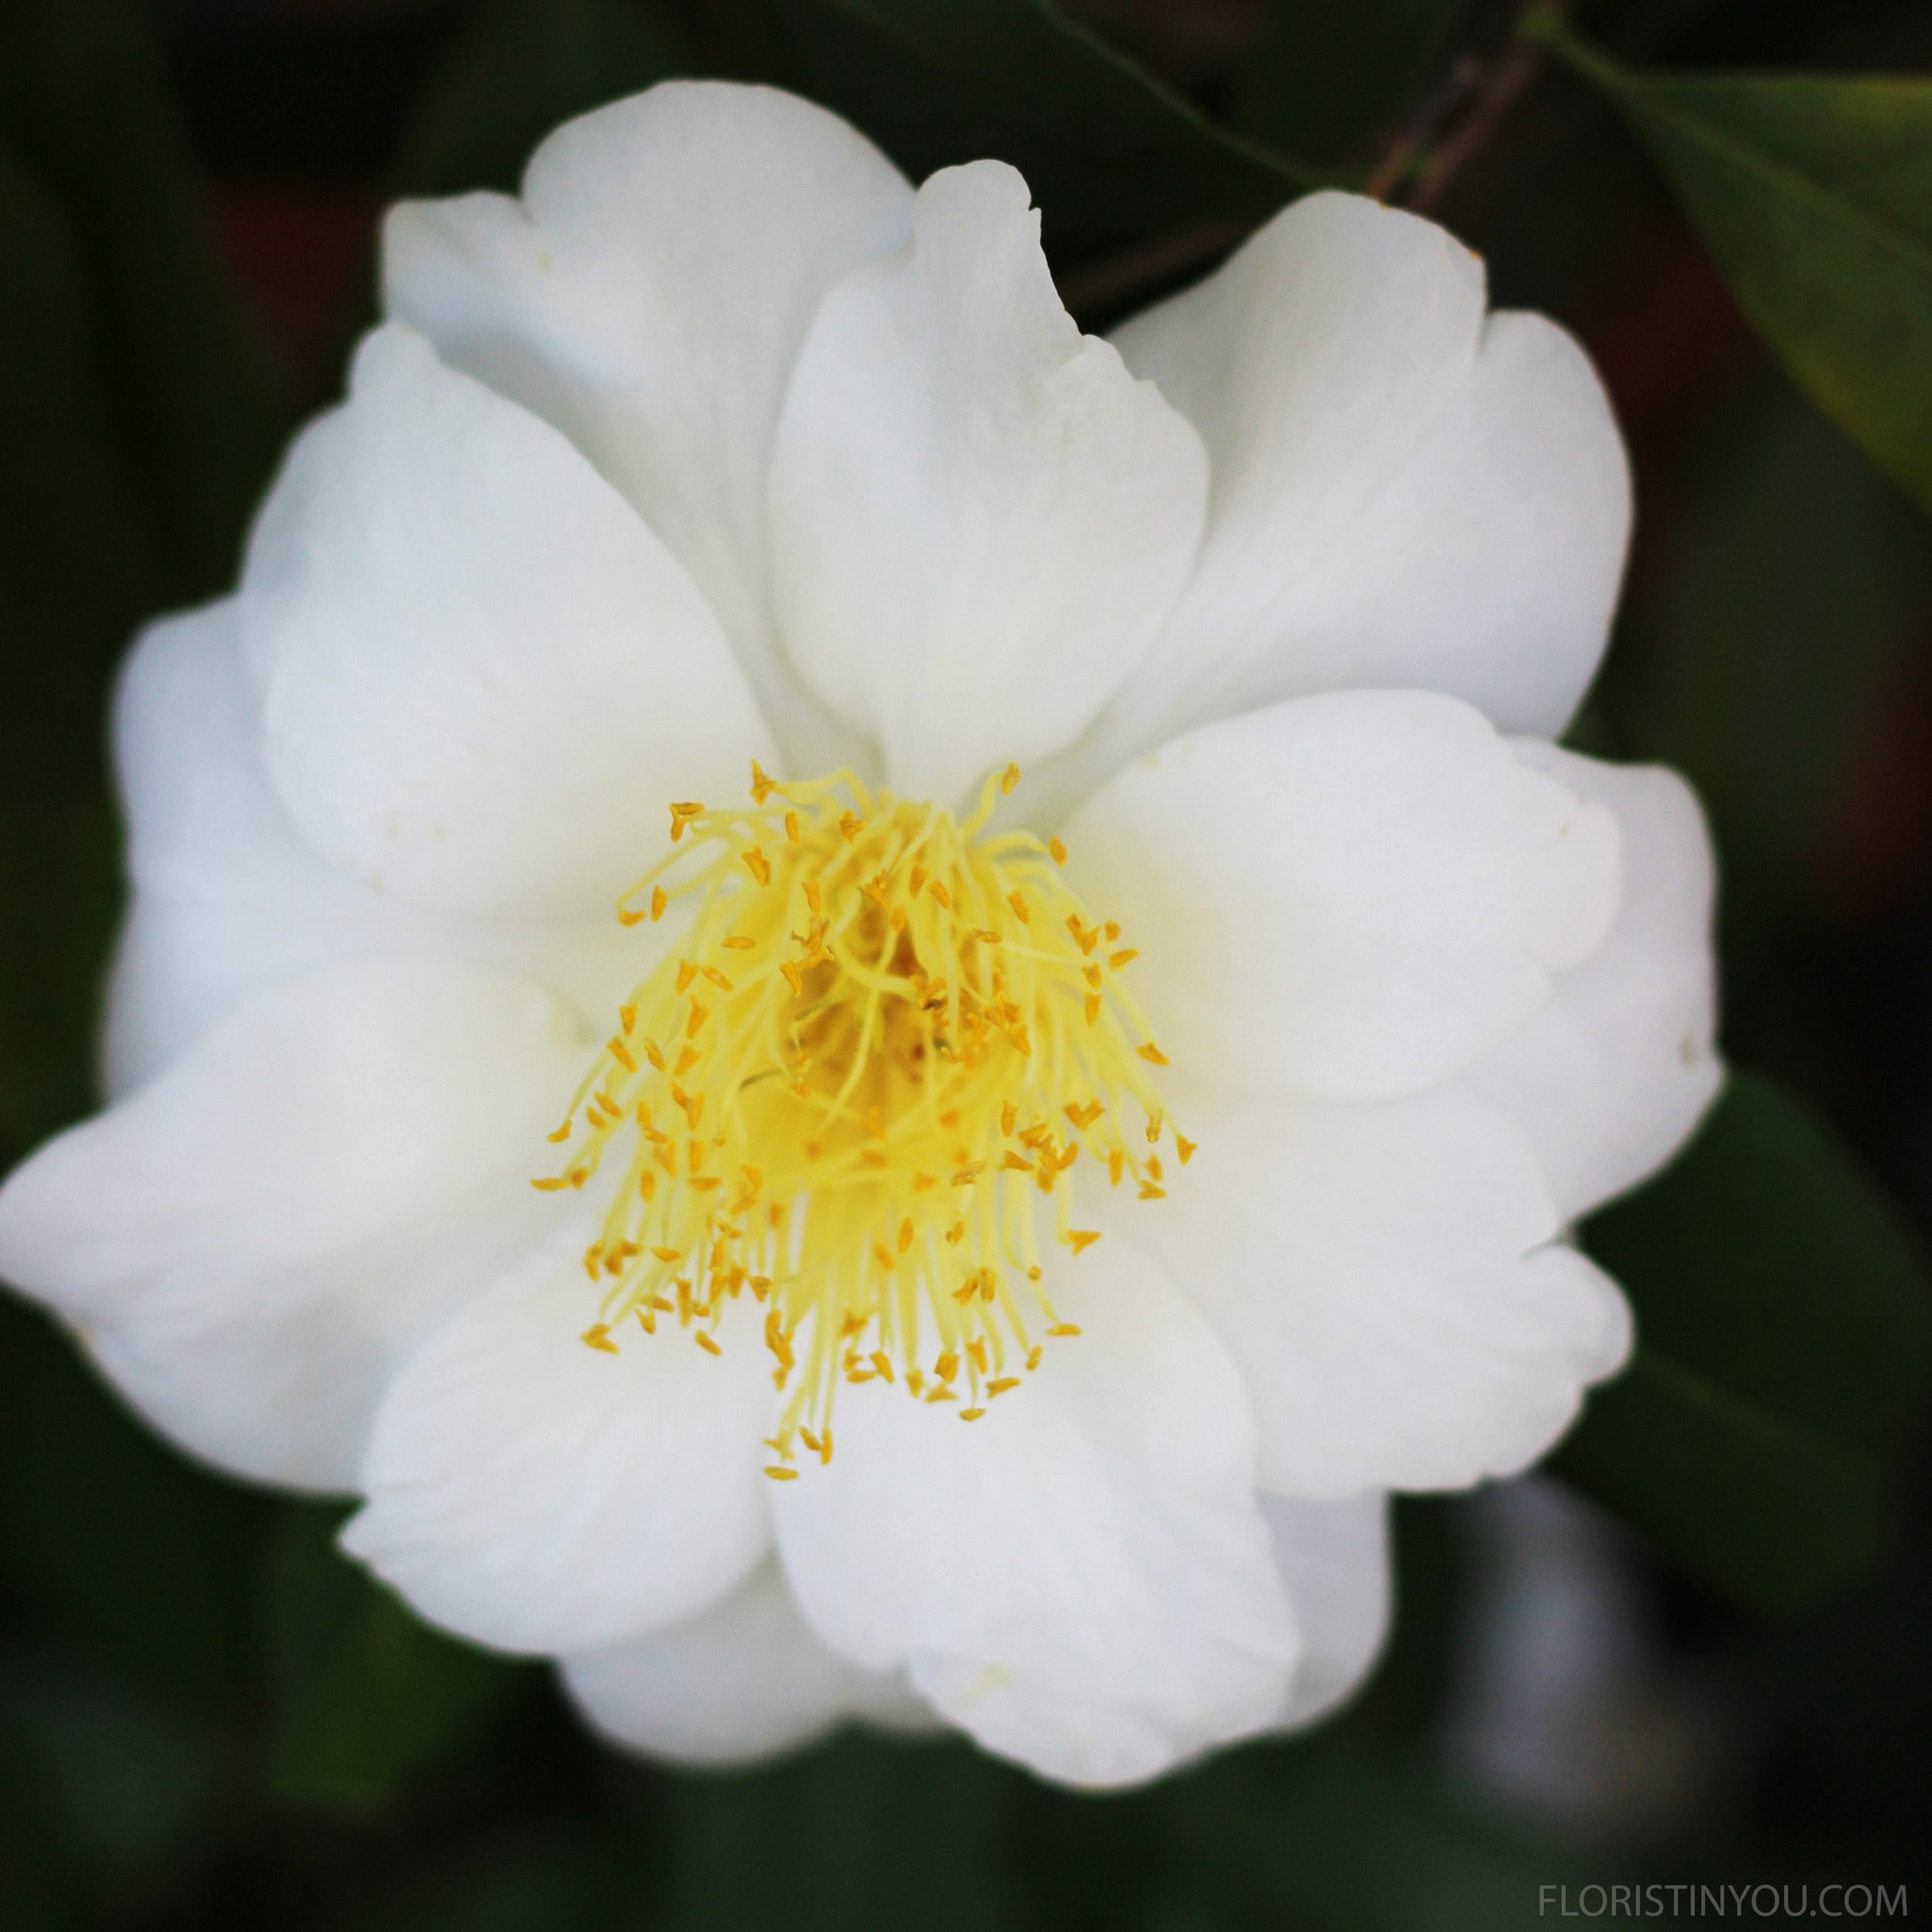 White camellia still on the bush. It's fabulous...very showy.